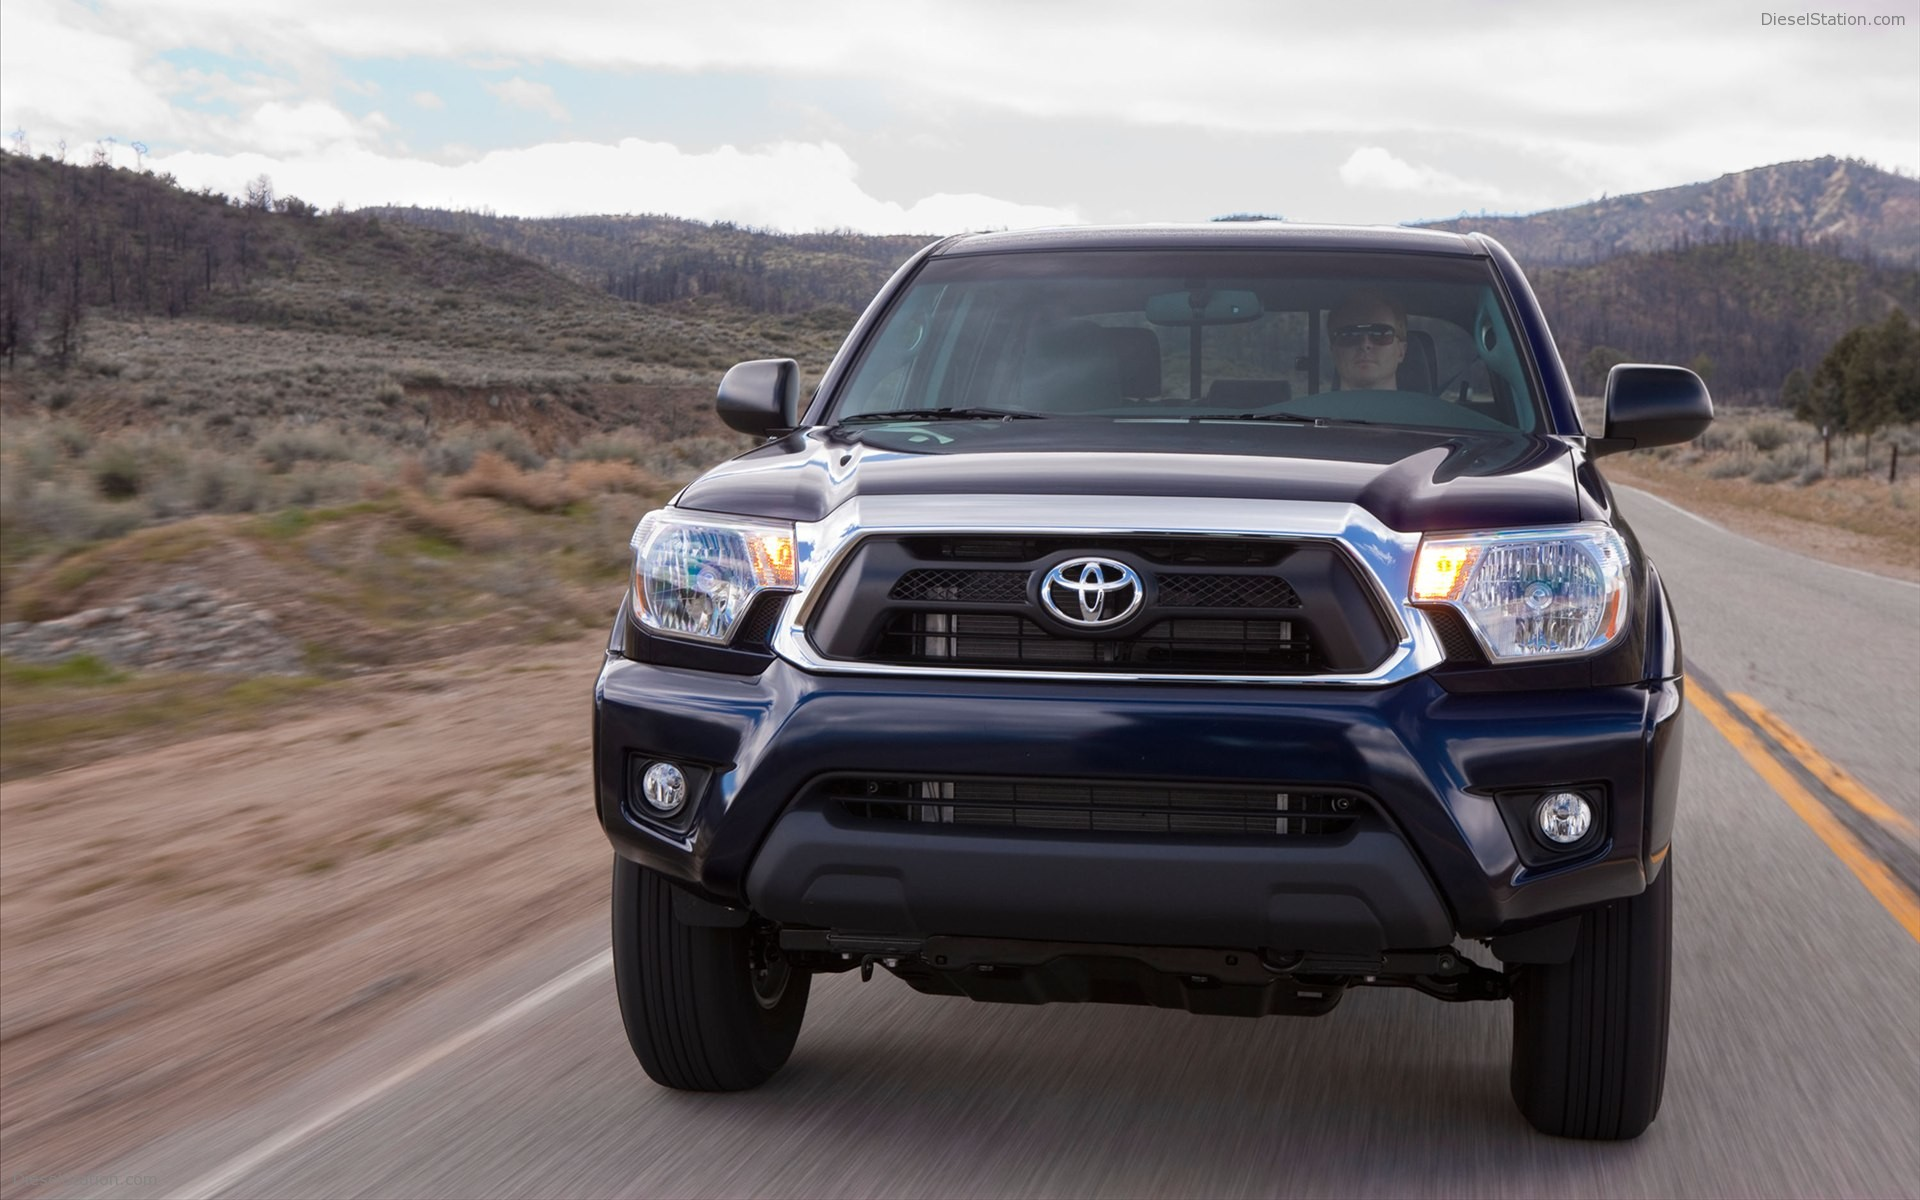 Toyota Tacoma 2012 photo - 5